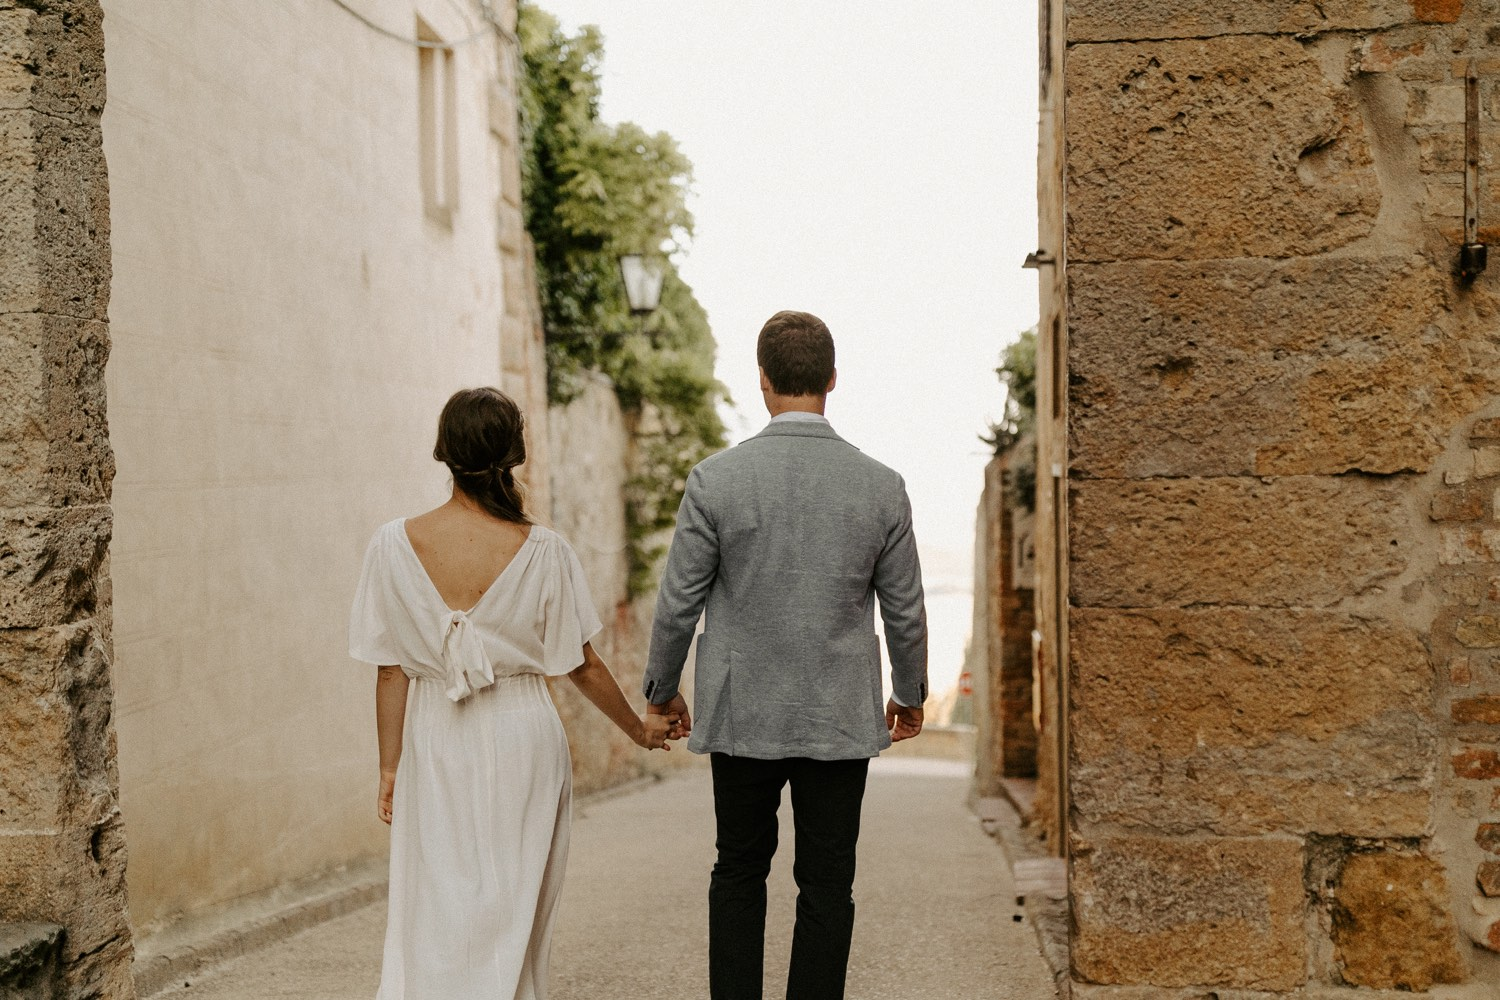 21_ali-dirk-pre-wedding-086_nyc_destination_photographer_tuscany_wedding.jpg